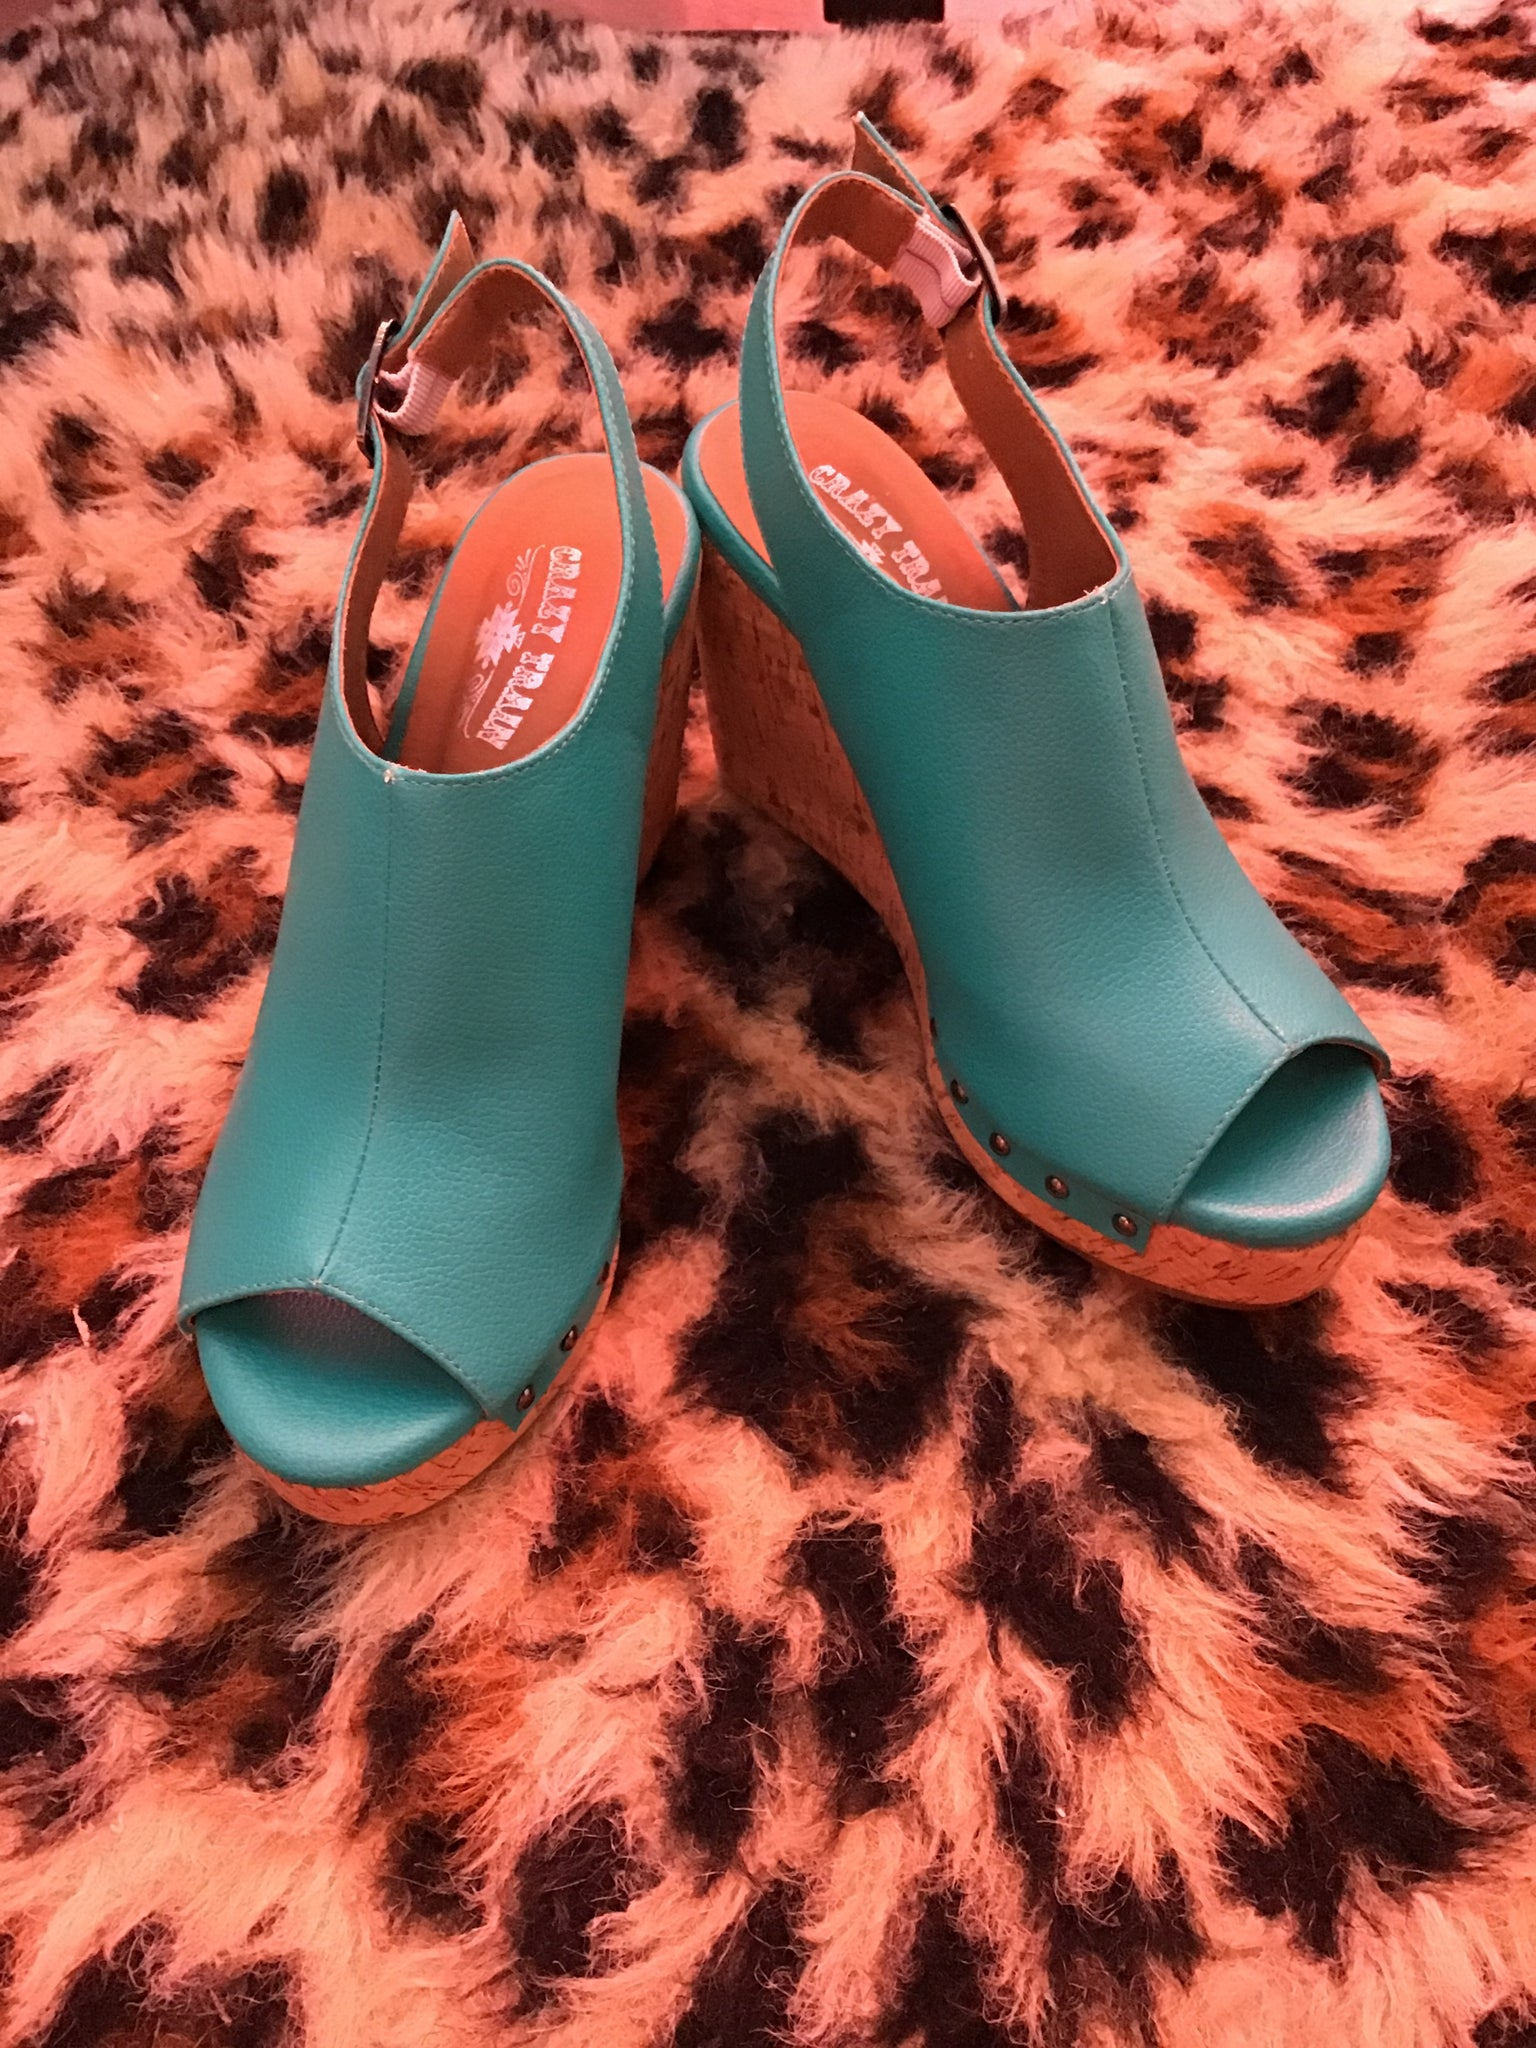 Teal Wedge